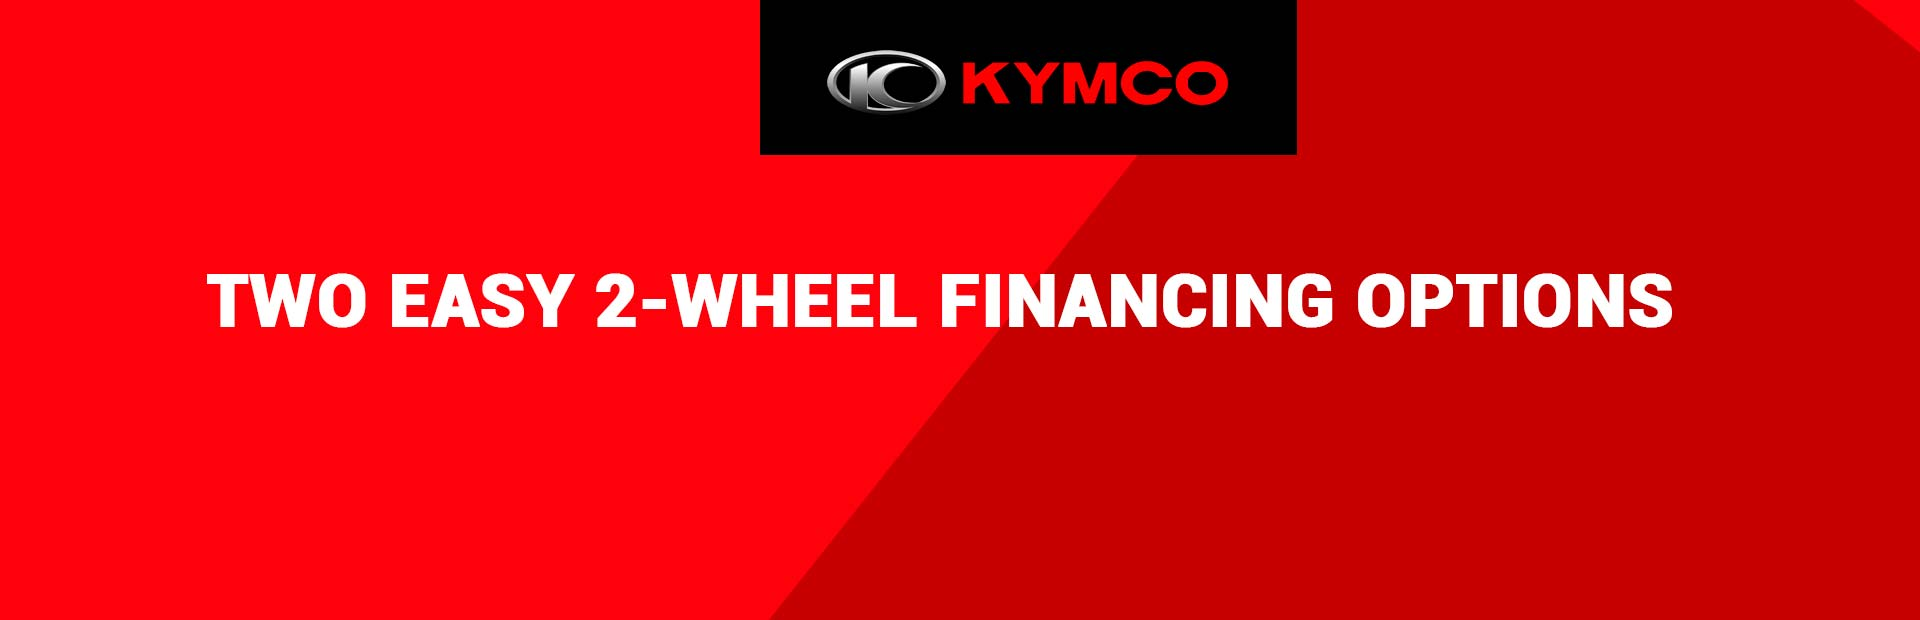 KYMCO - TWO EASY 2-WHEEL FINANCING OPTIONS at Brenny's Motorcycle Clinic, Bettendorf, IA 52722